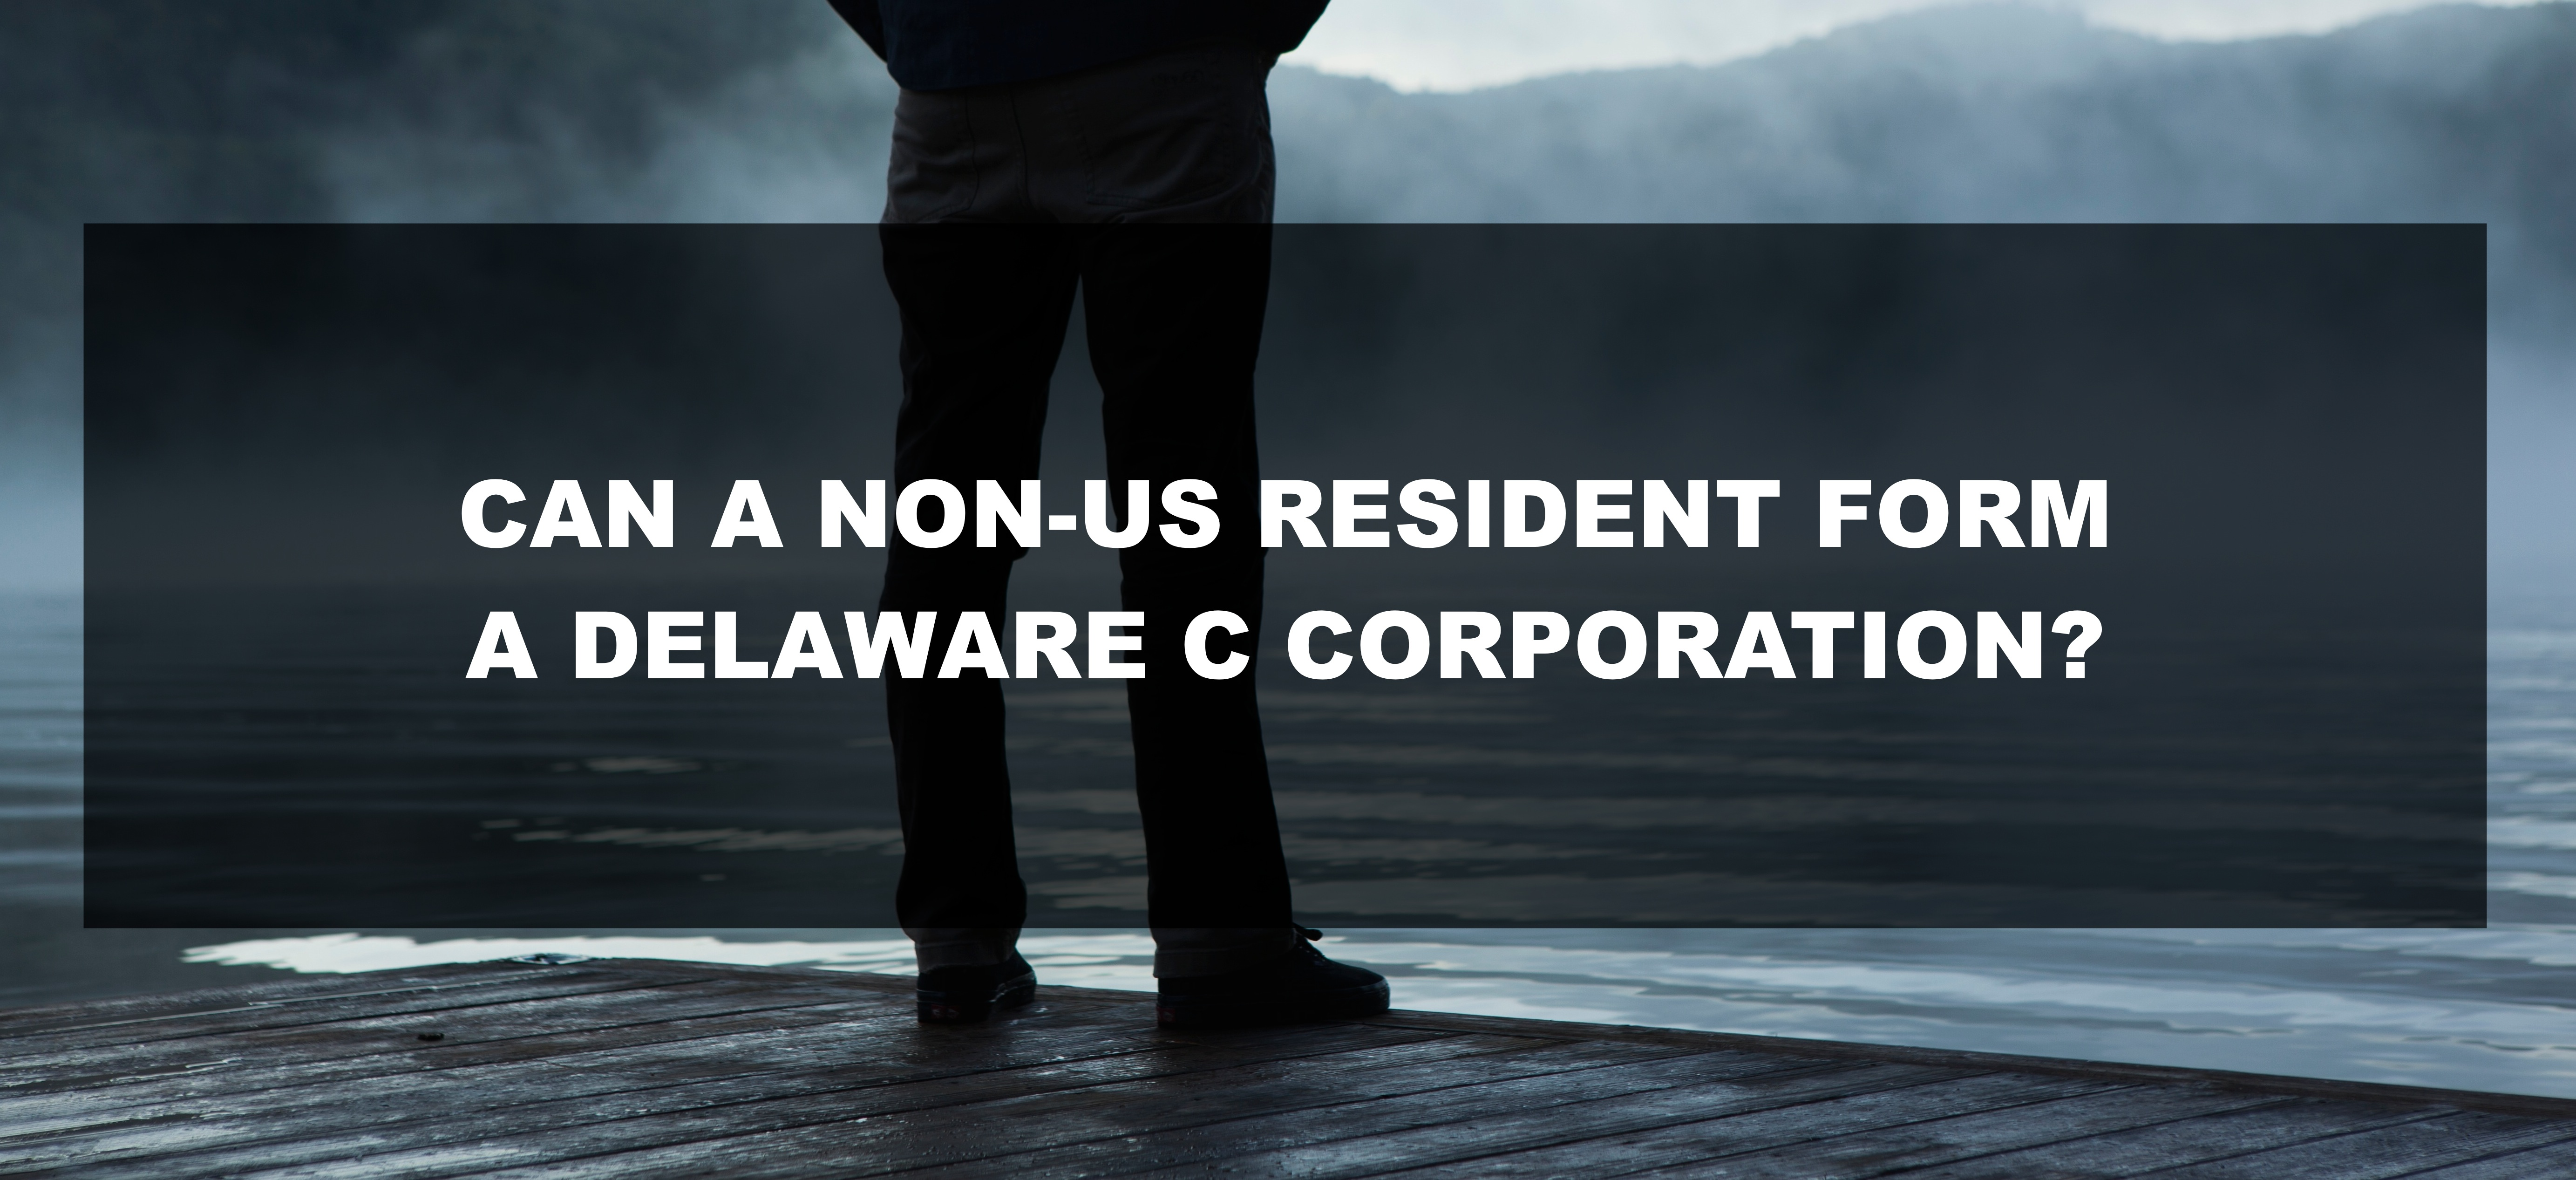 can a non us resident form a Delaware c corporation